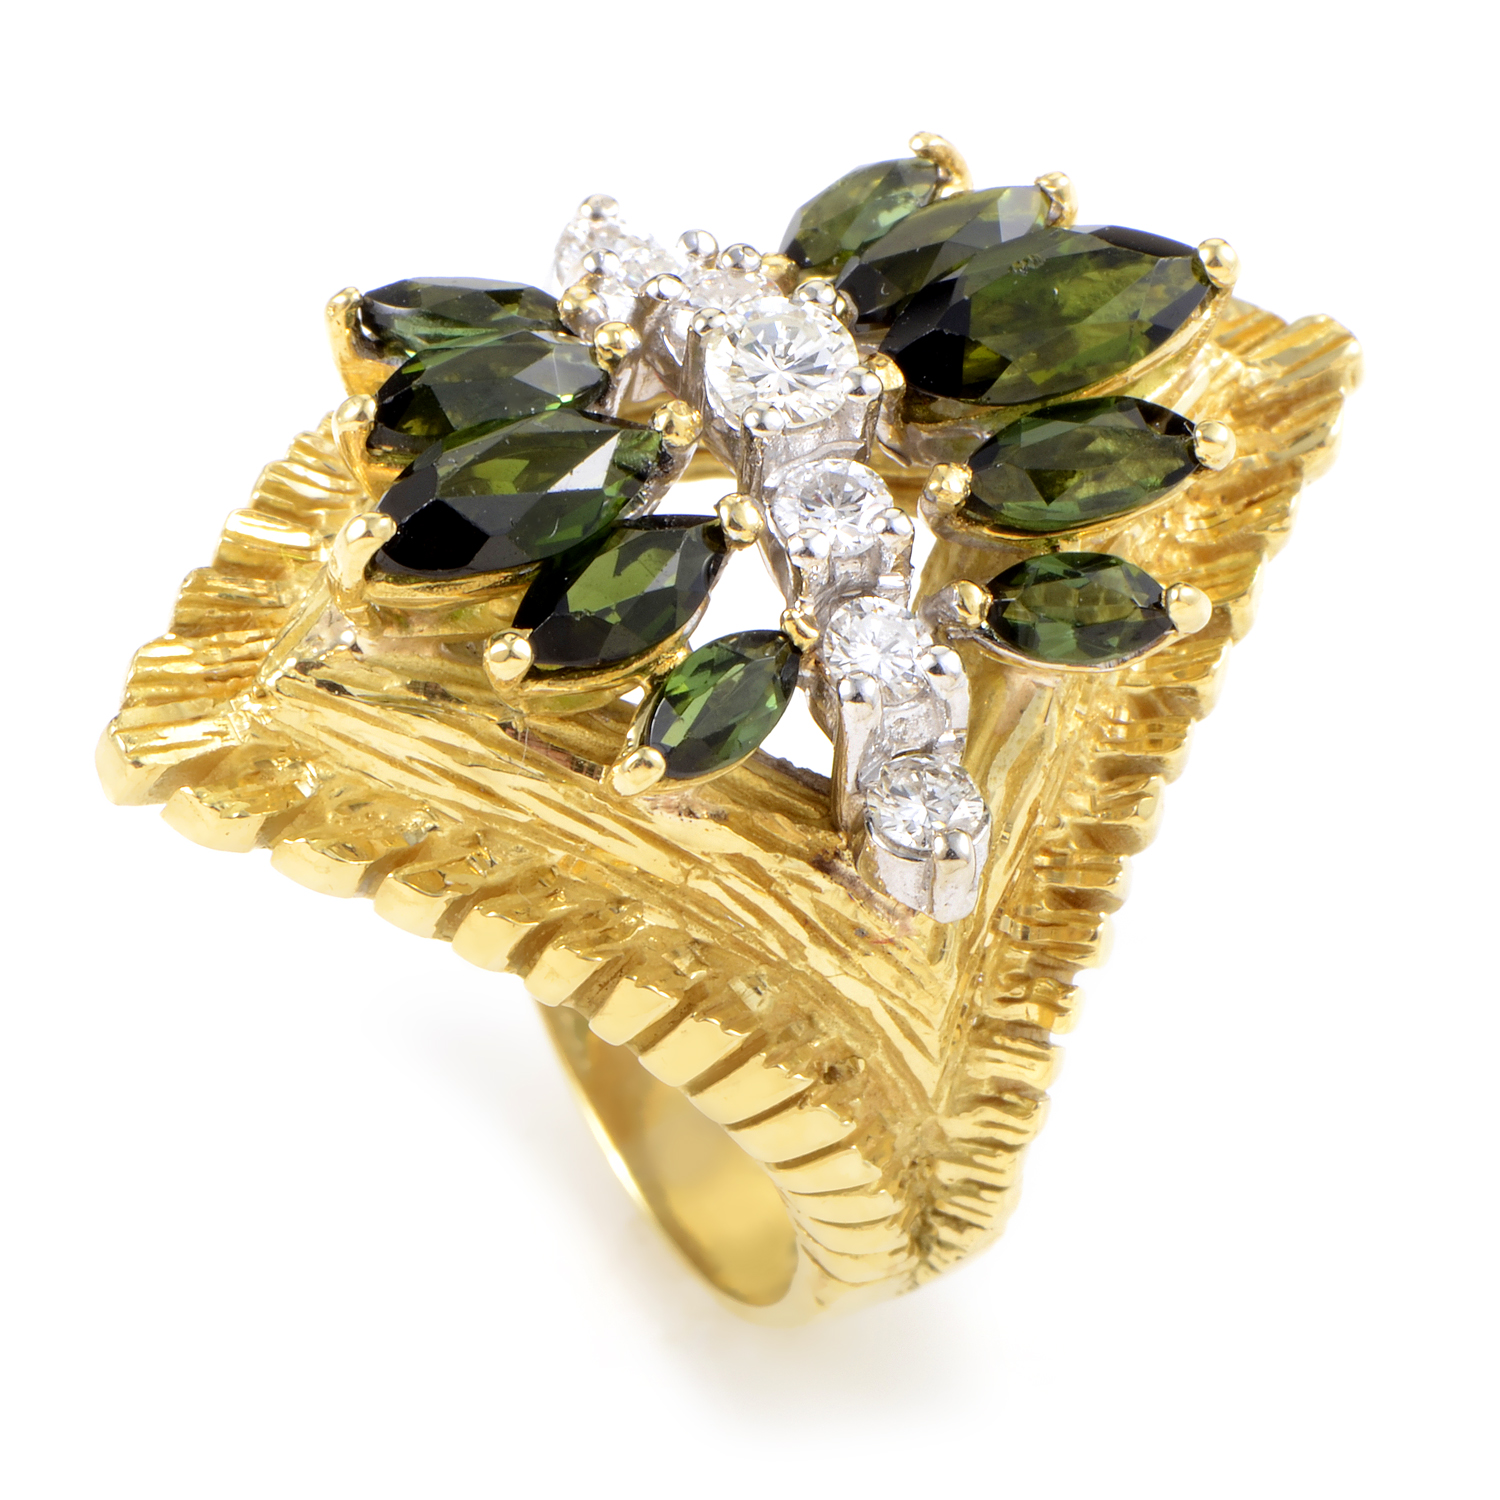 18K Yellow Gold Diamond & Green Tourmaline Ring MFC07-021816